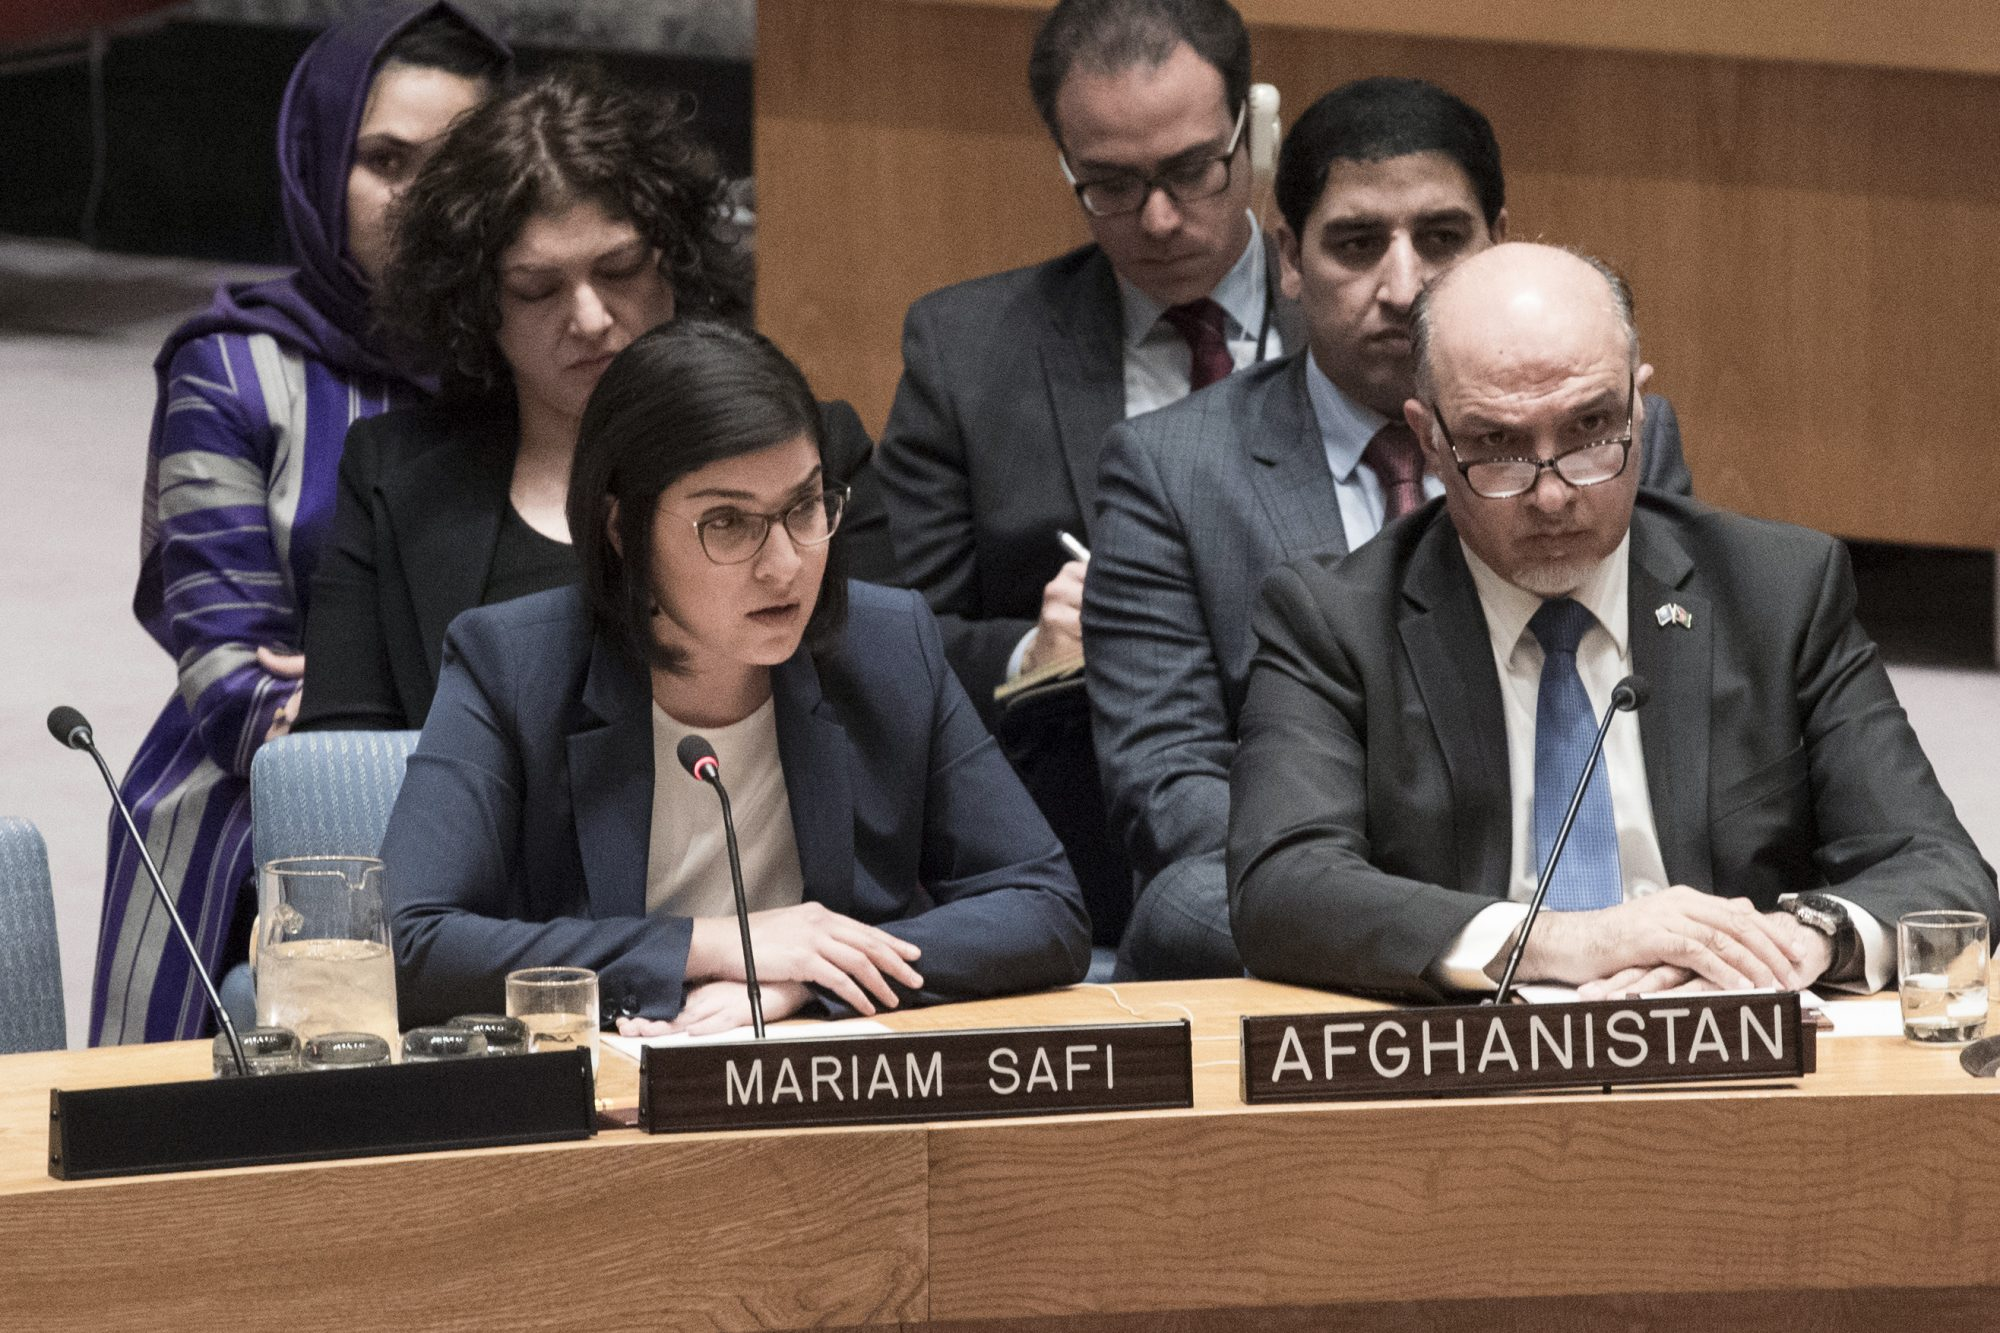 UN Security Council Briefing on Afghanistan by Mariam Safi